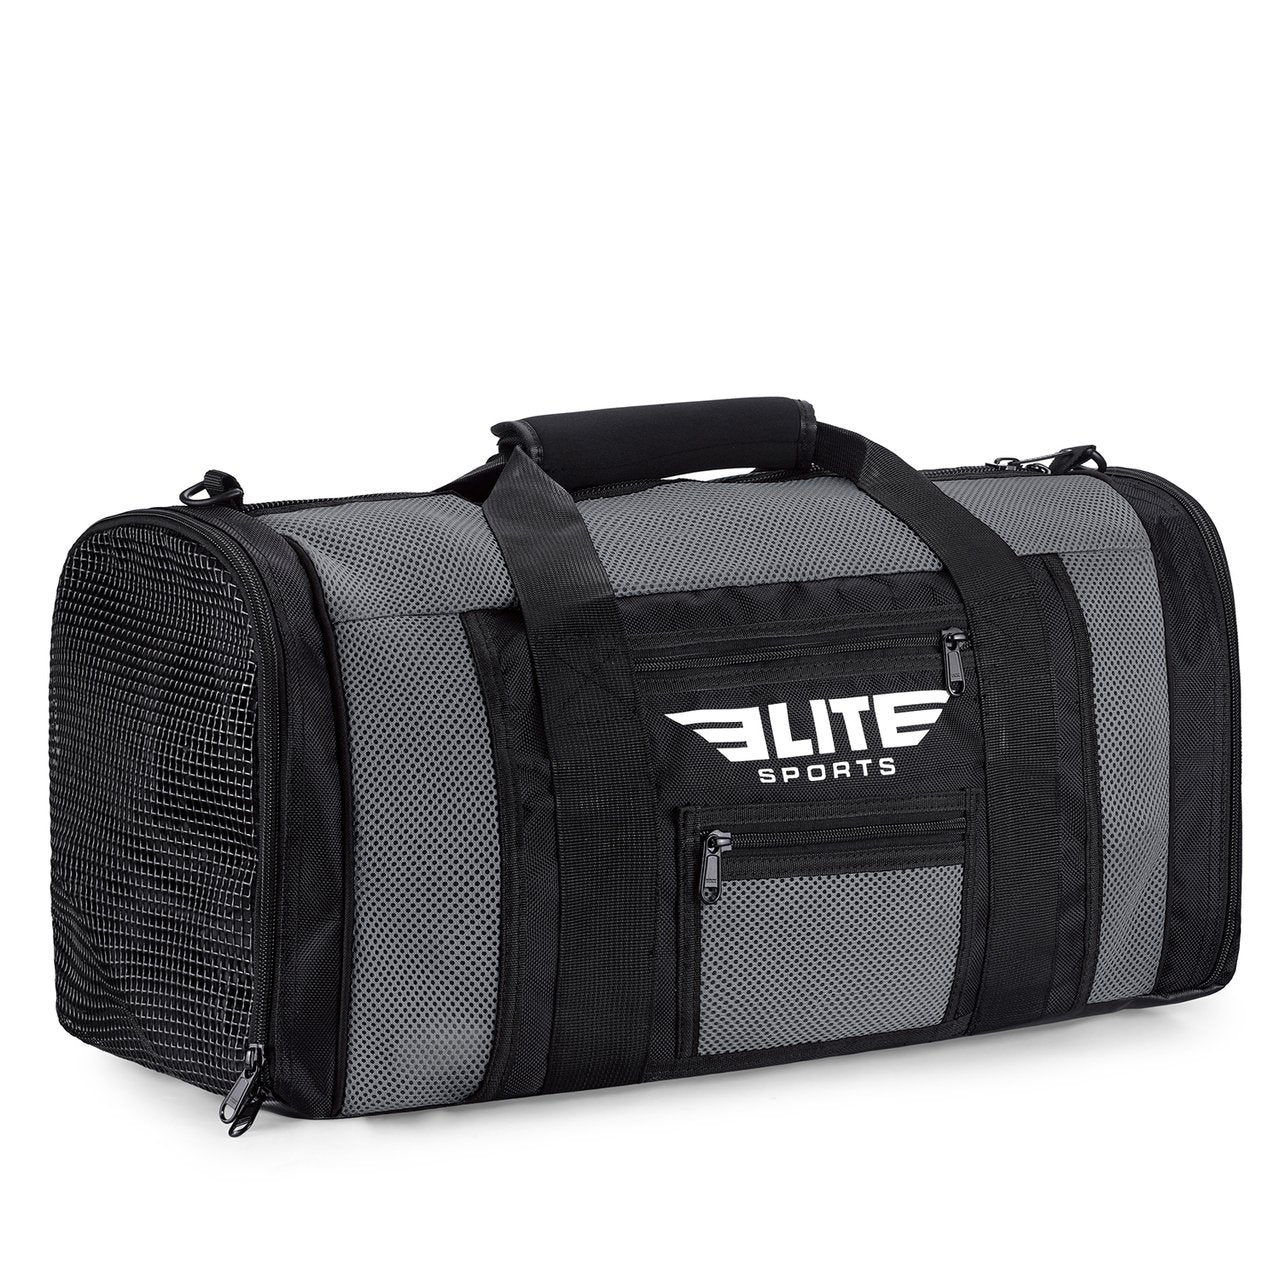 Load image into Gallery viewer, Elite Sports Mesh Gray Large Crossfit Gear Gym Bag